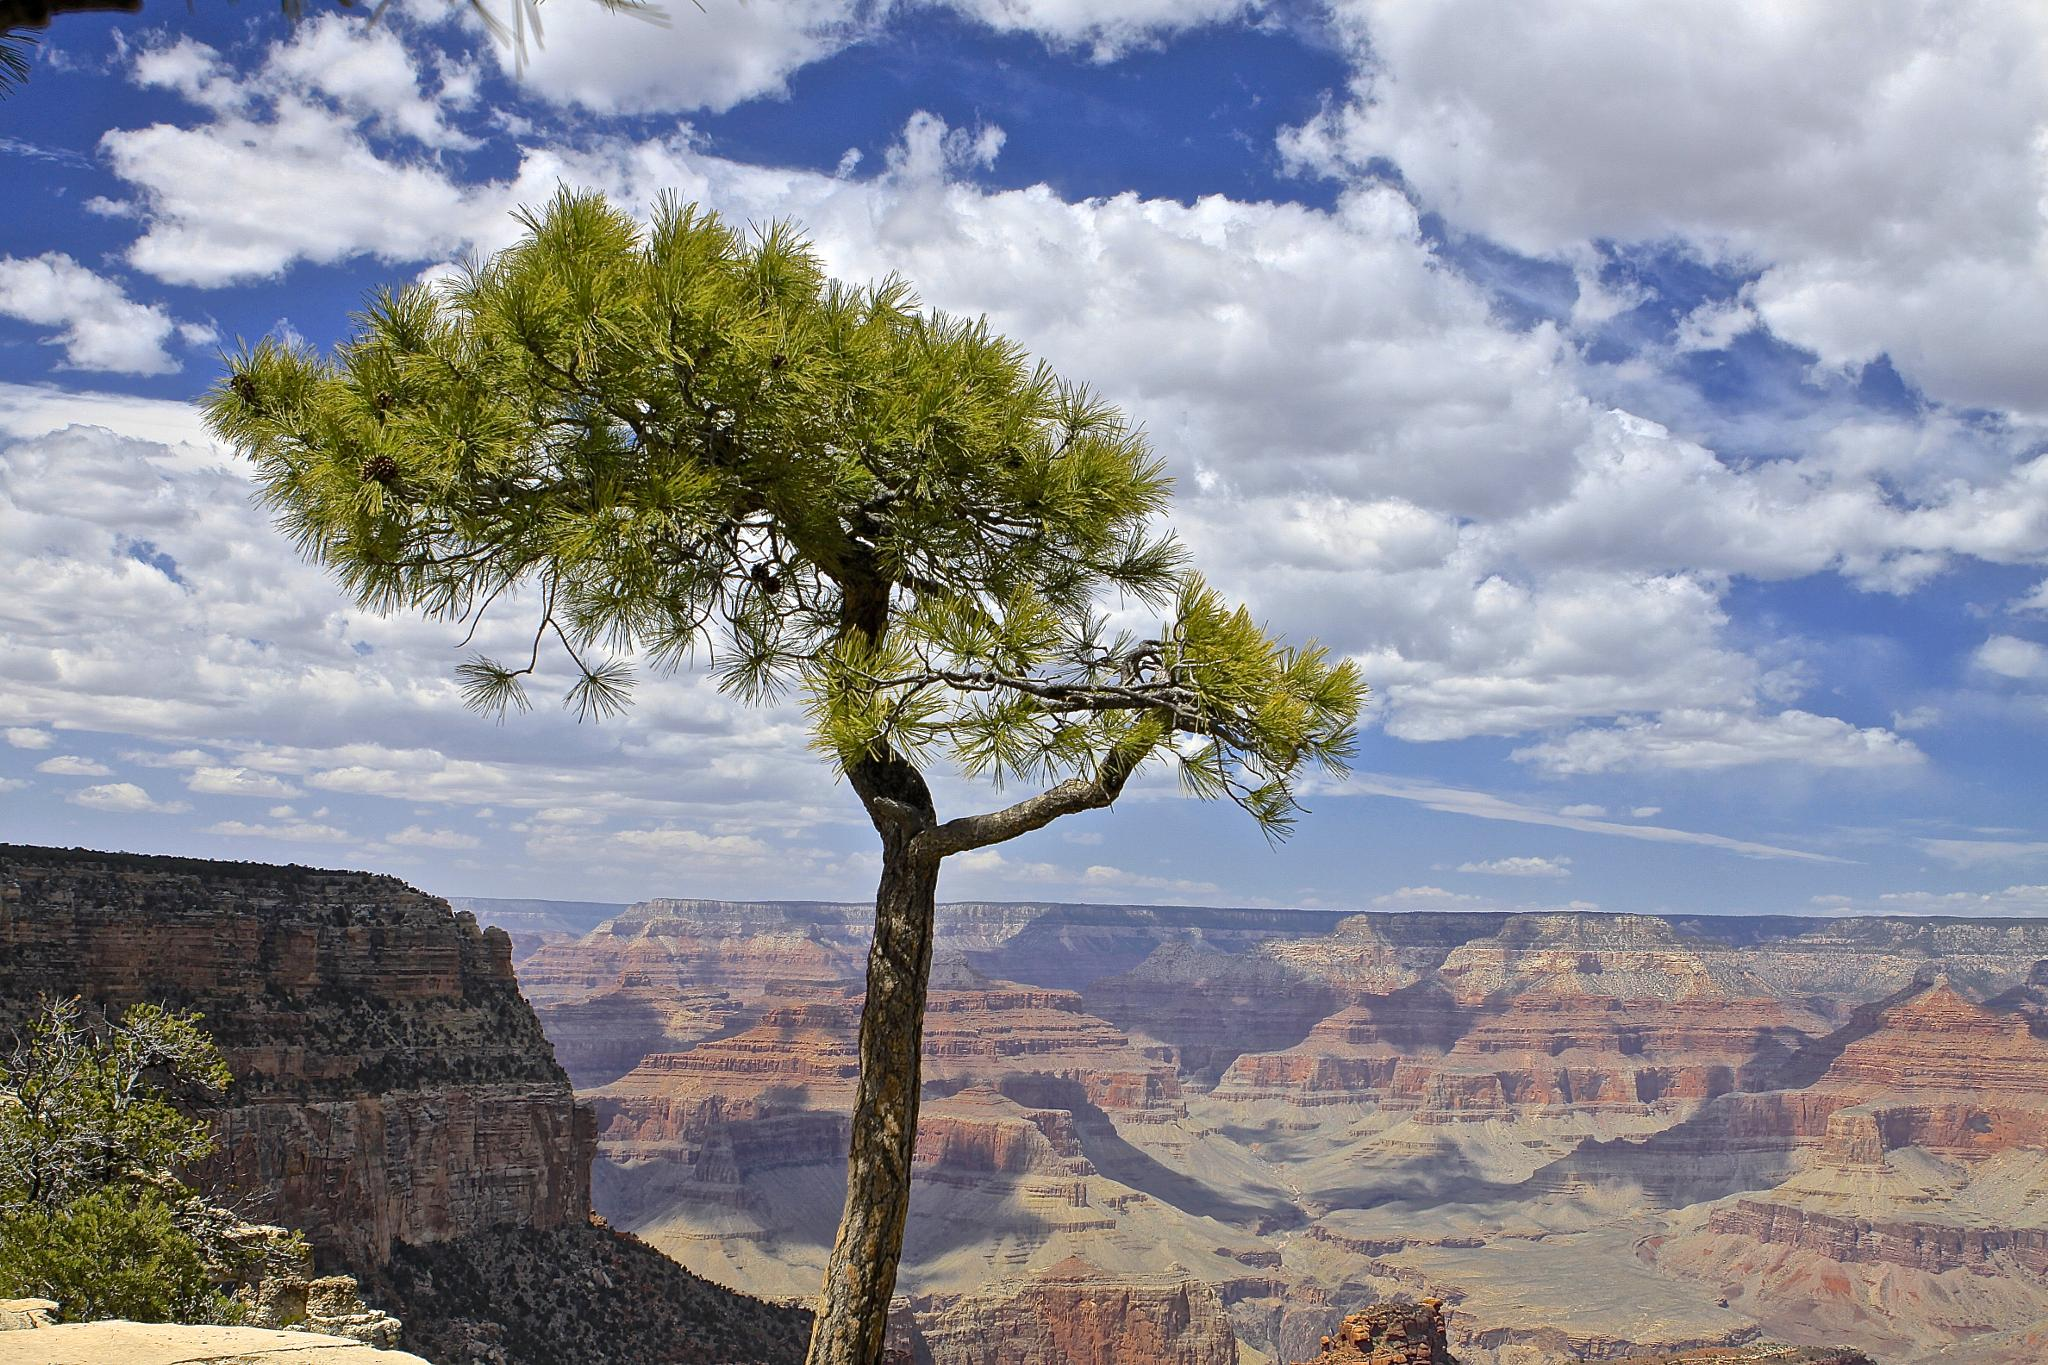 At the Grand Canyon by Tom Ratigan